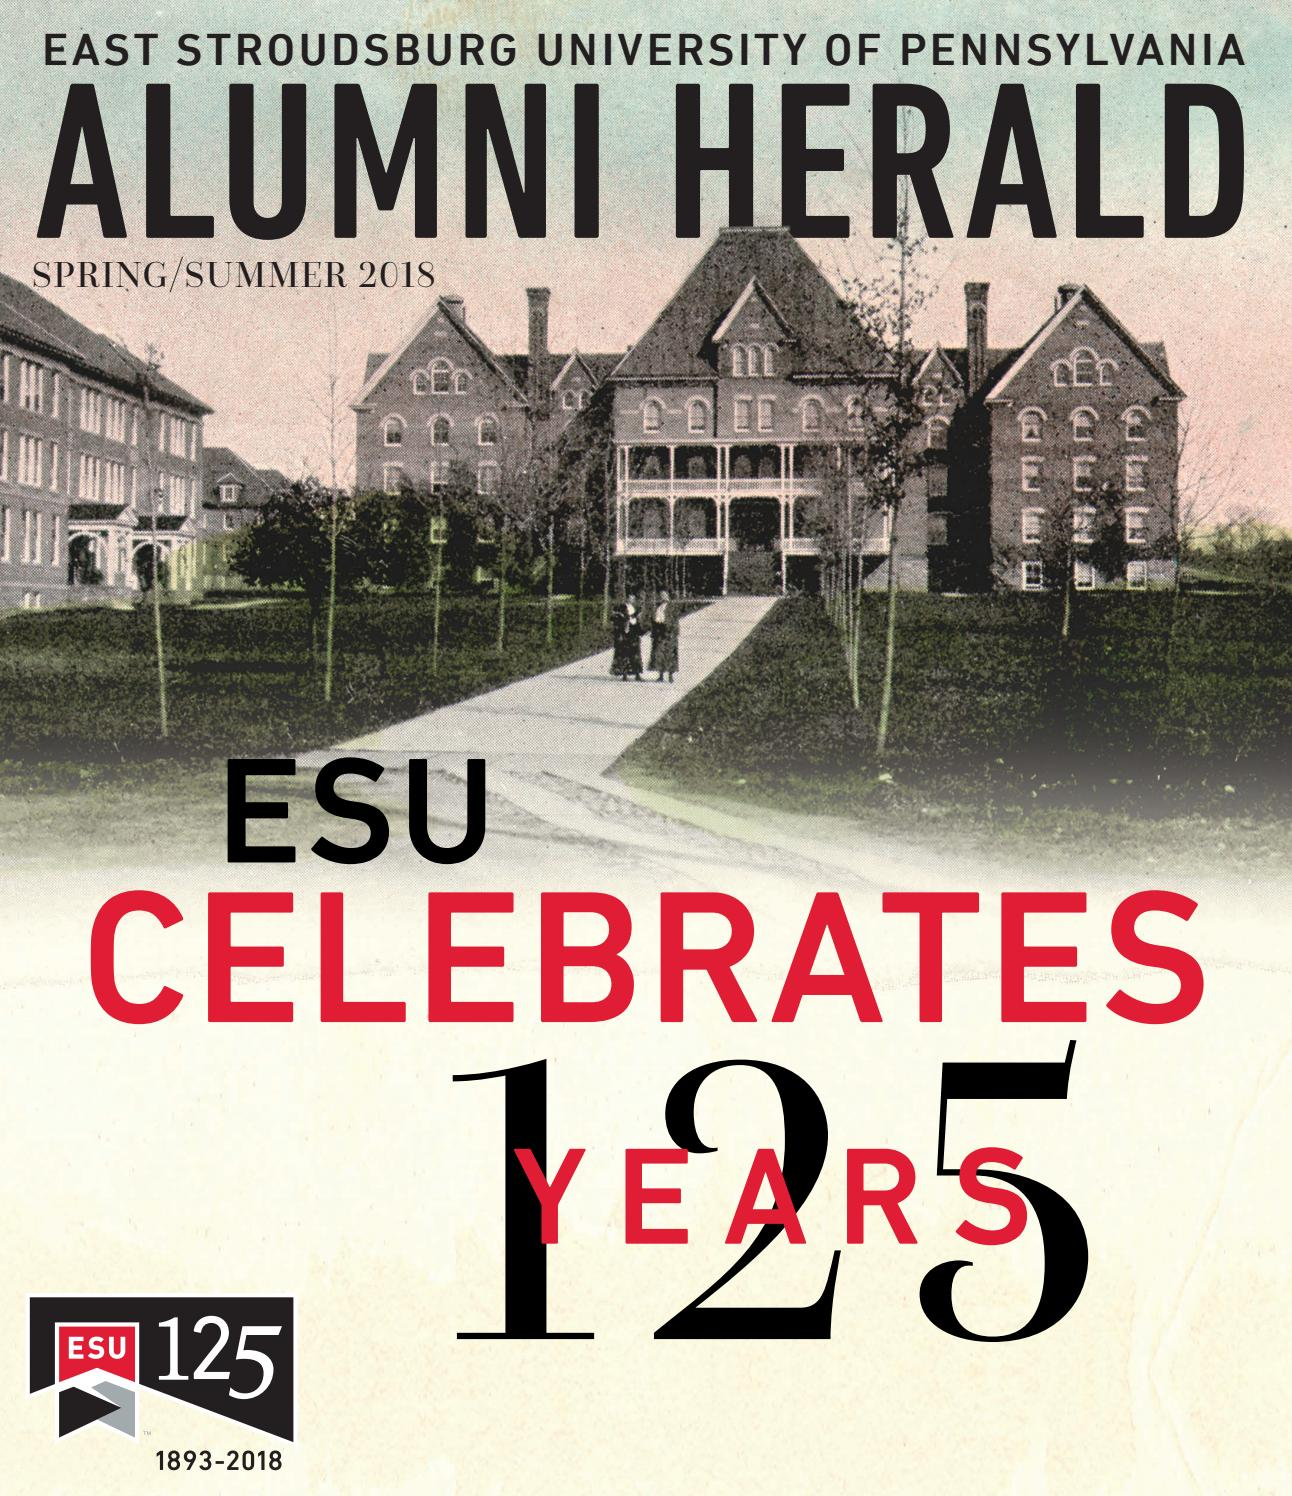 ESU Alumni Herald Spring/Summer 2018 by East Stroudsburg University